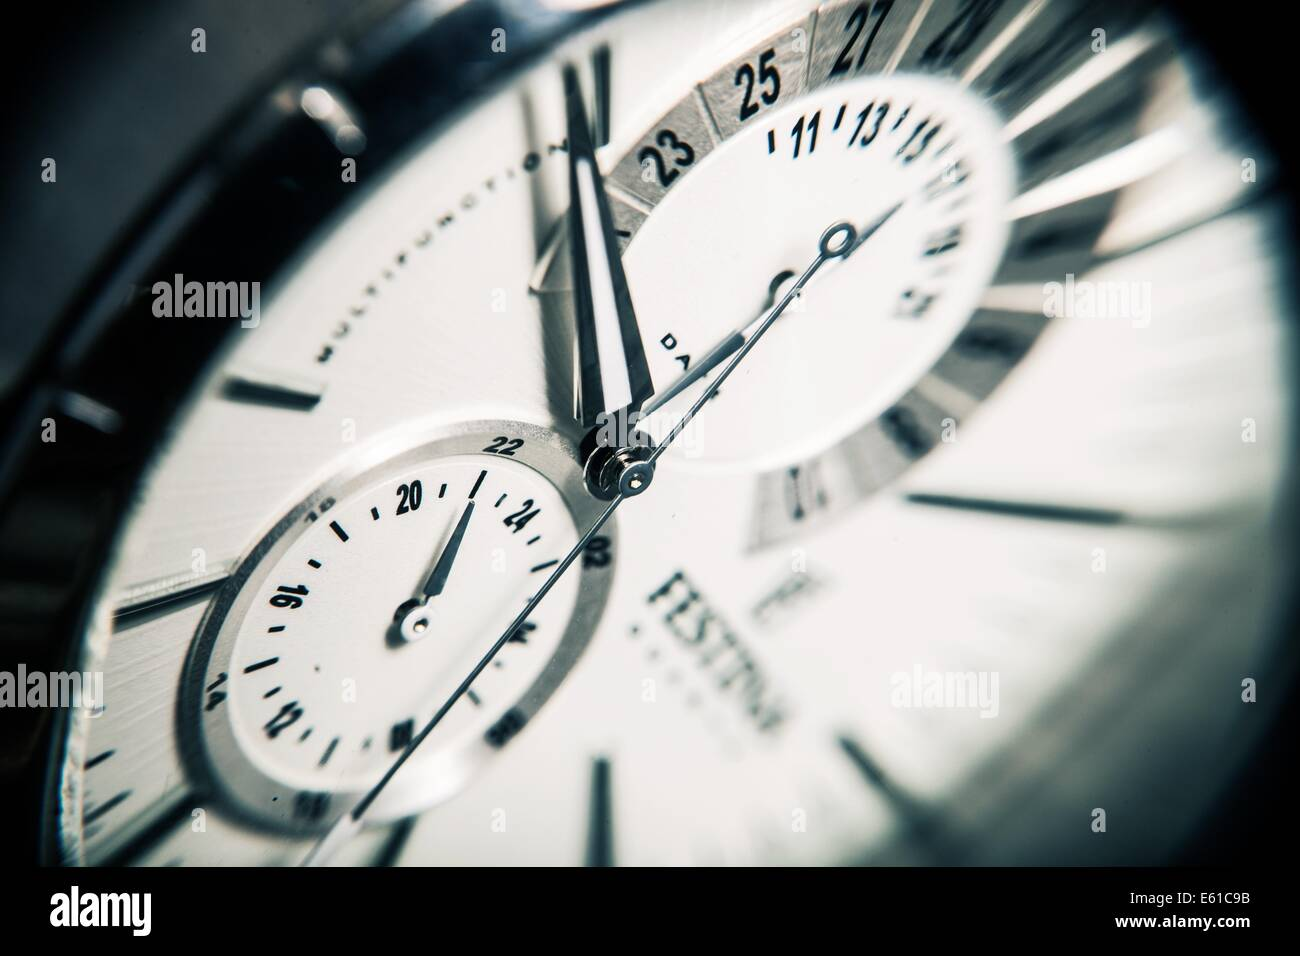 clock time watch fashion hours minutes seconds - Stock Image